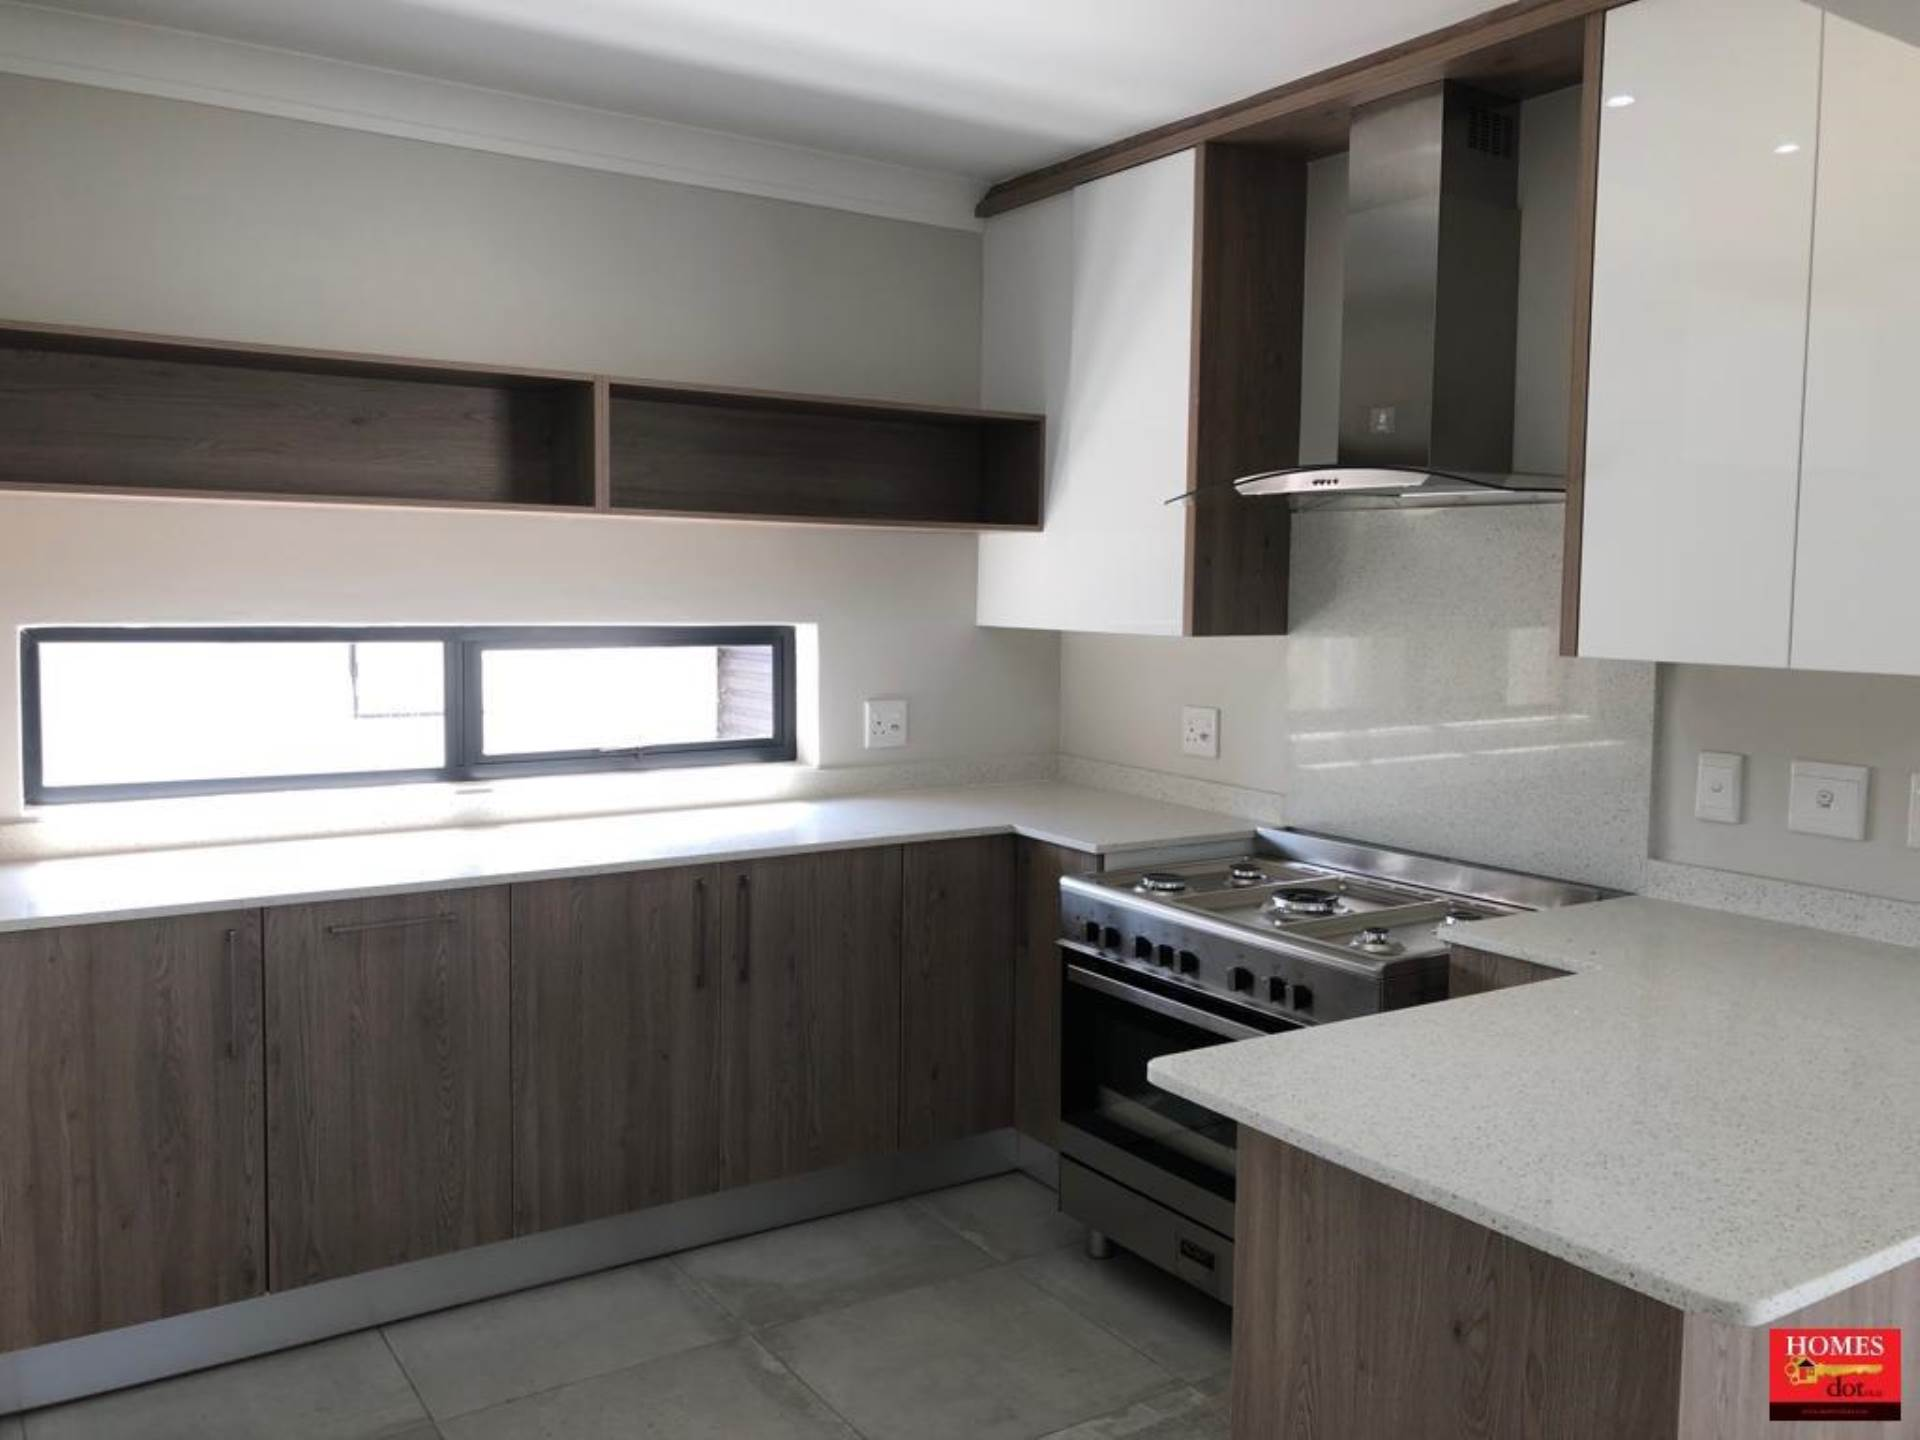 House For Sale In Midstream Meadows, Centurion, Gauteng for